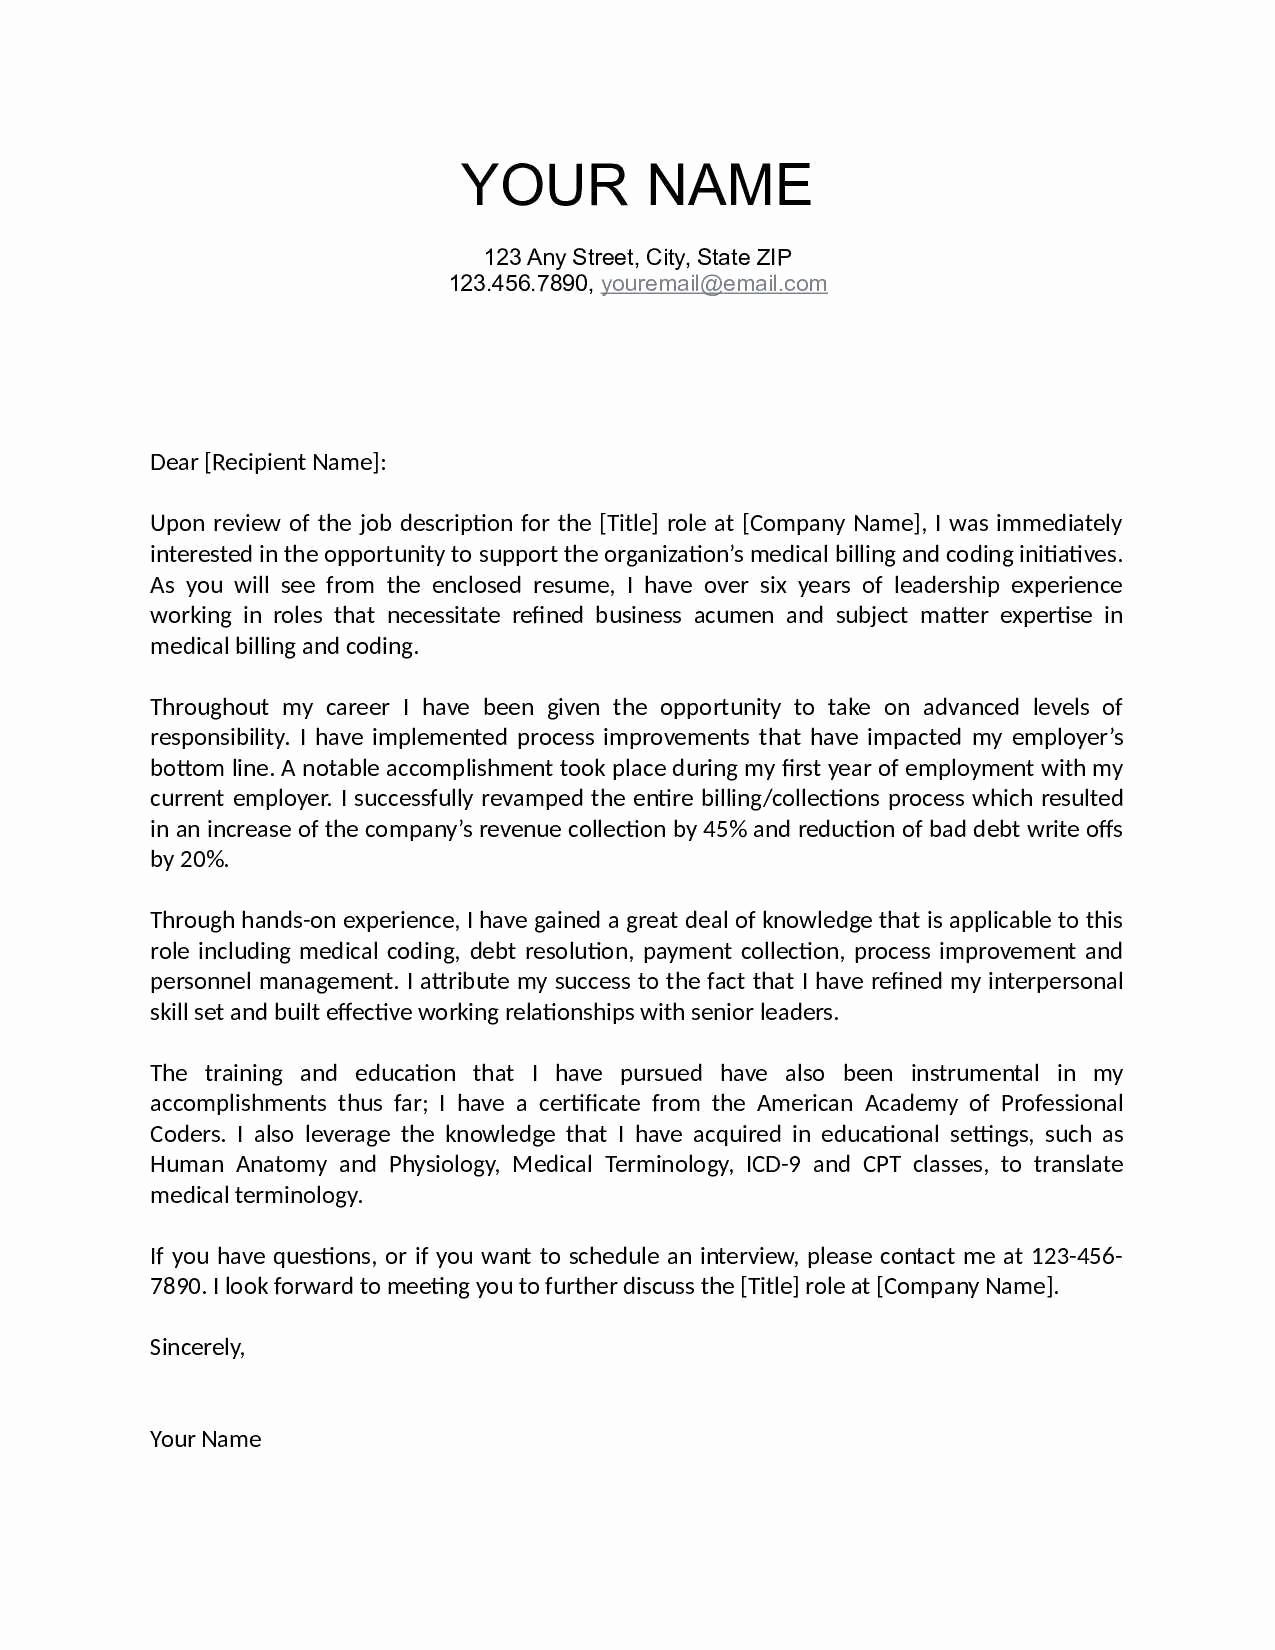 bad news letter template Collection-Writing A Cover Letter Template Writing A Good Cover Letter Beautiful Cover Letter Overseas Job 1-q